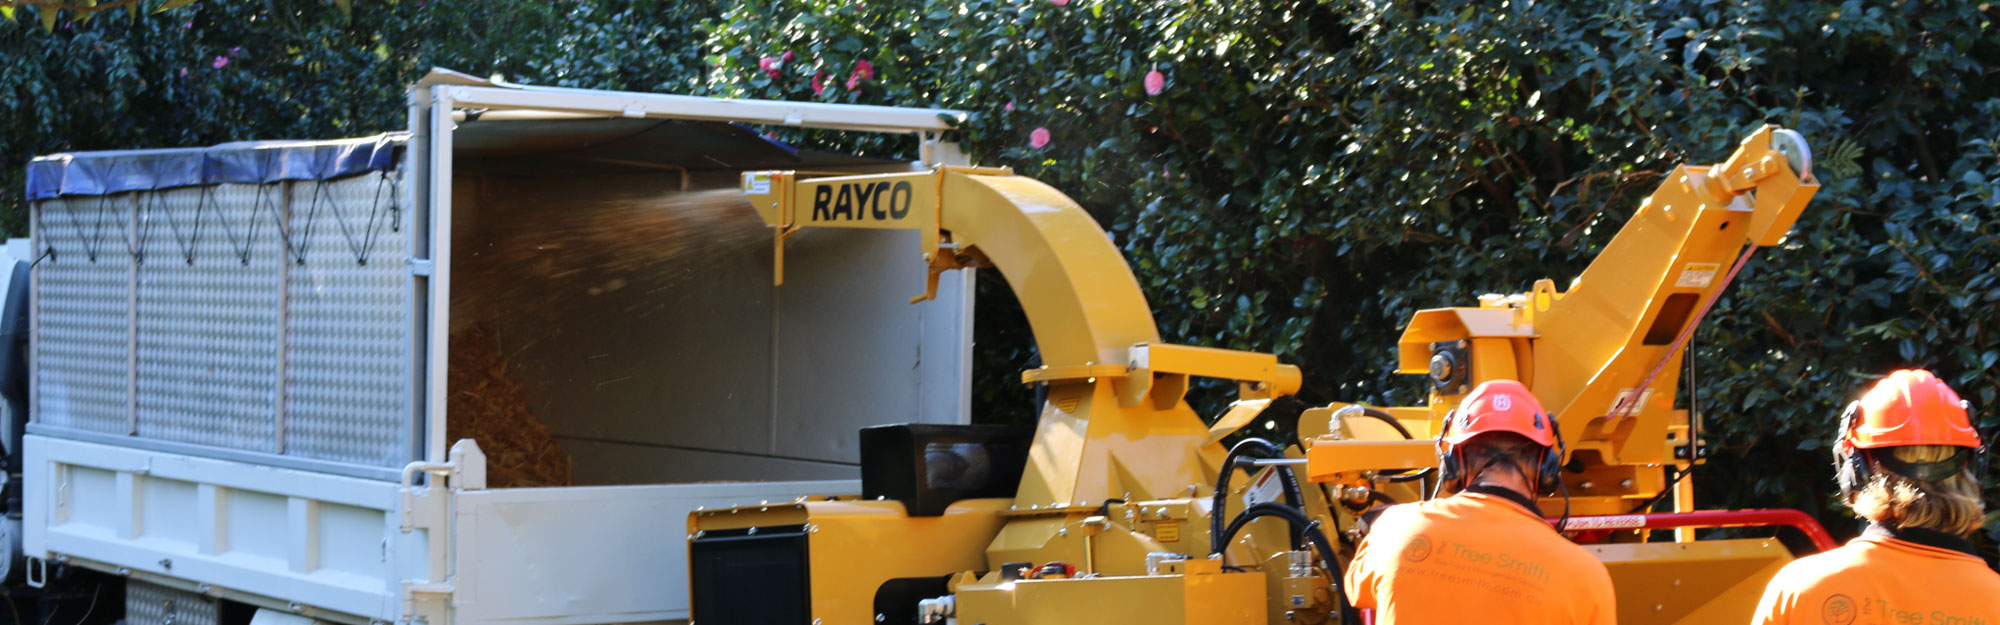 Global Machinery Sales Rayco Wood Chippers